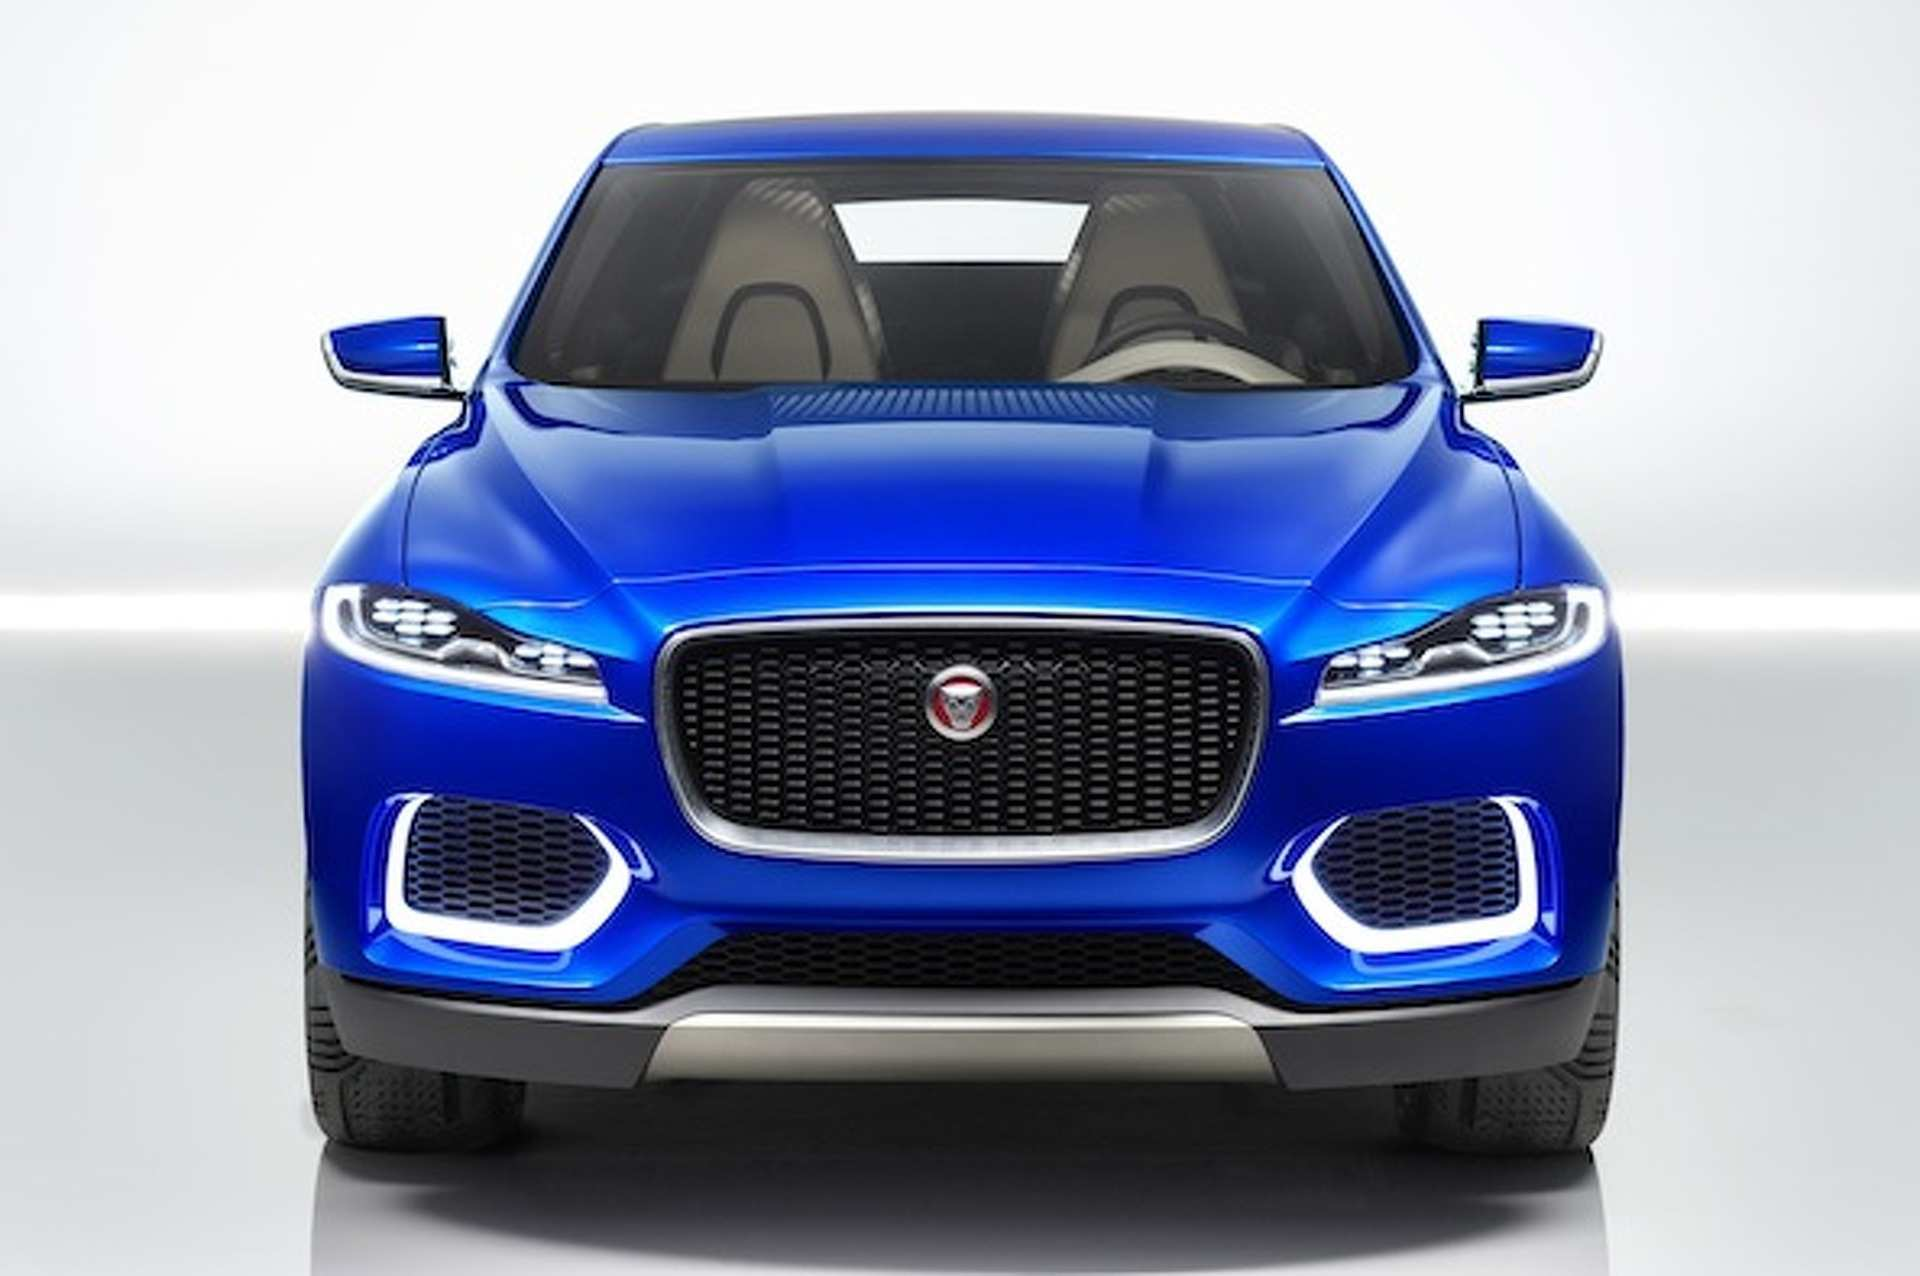 40 All New 2020 Jaguar C X17 Crossover Pricing